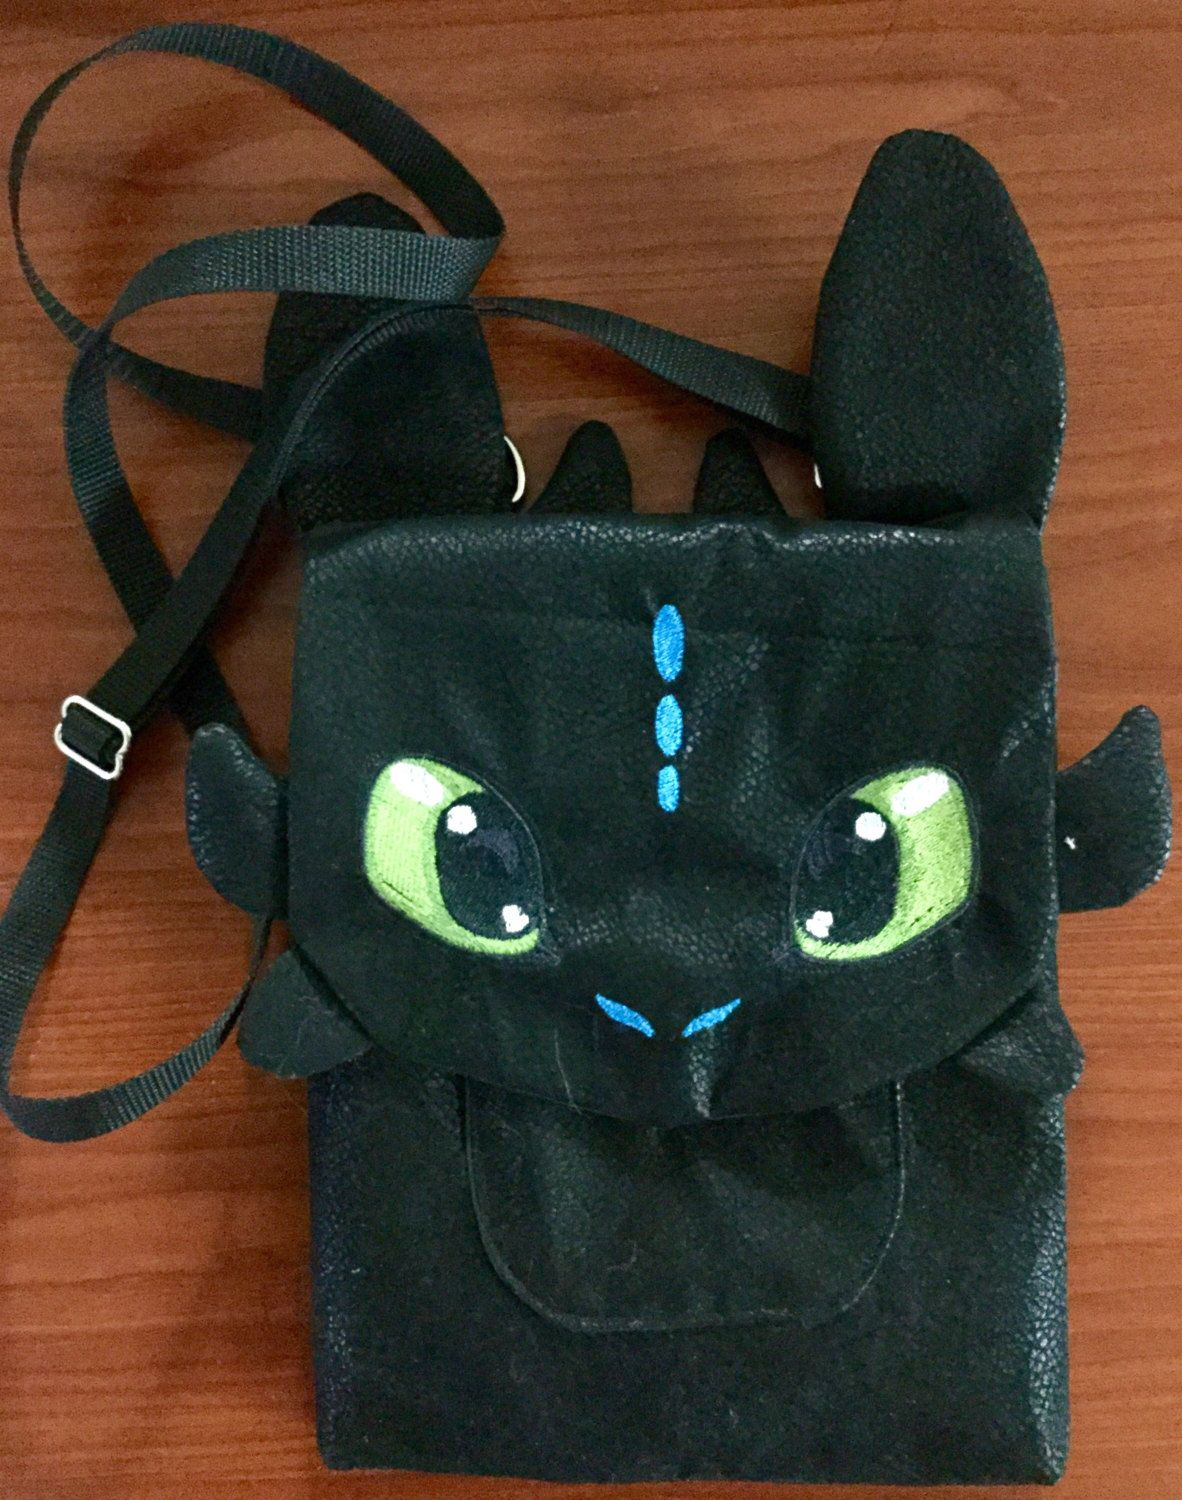 Popular items for how to train your dragon on etsy rodenden how to train your dragon alpha toothless ipad cover or tablet case with adjustable shoulder strap ccuart Image collections